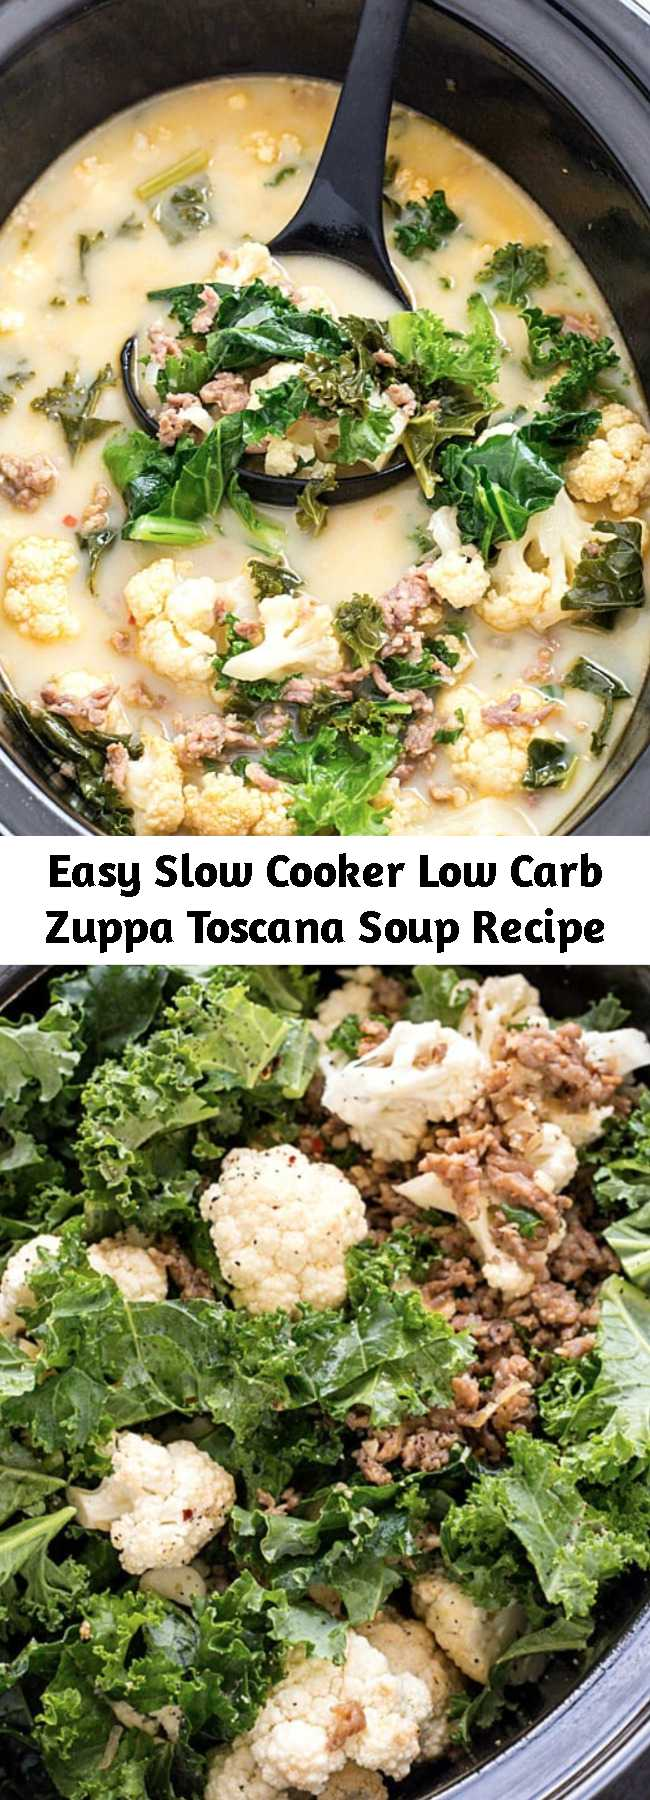 Easy Slow Cooker Low Carb Zuppa Toscana Soup Recipe - Slow Cooker Low Carb Zuppa Toscana Soup - Skip the trip to your local restaurant and make a batch of this insanely delicious copycat soup! It's healthy, it's delicious, and it's made low carb! Perfect for a low carb and keto-friendly lifestyle!